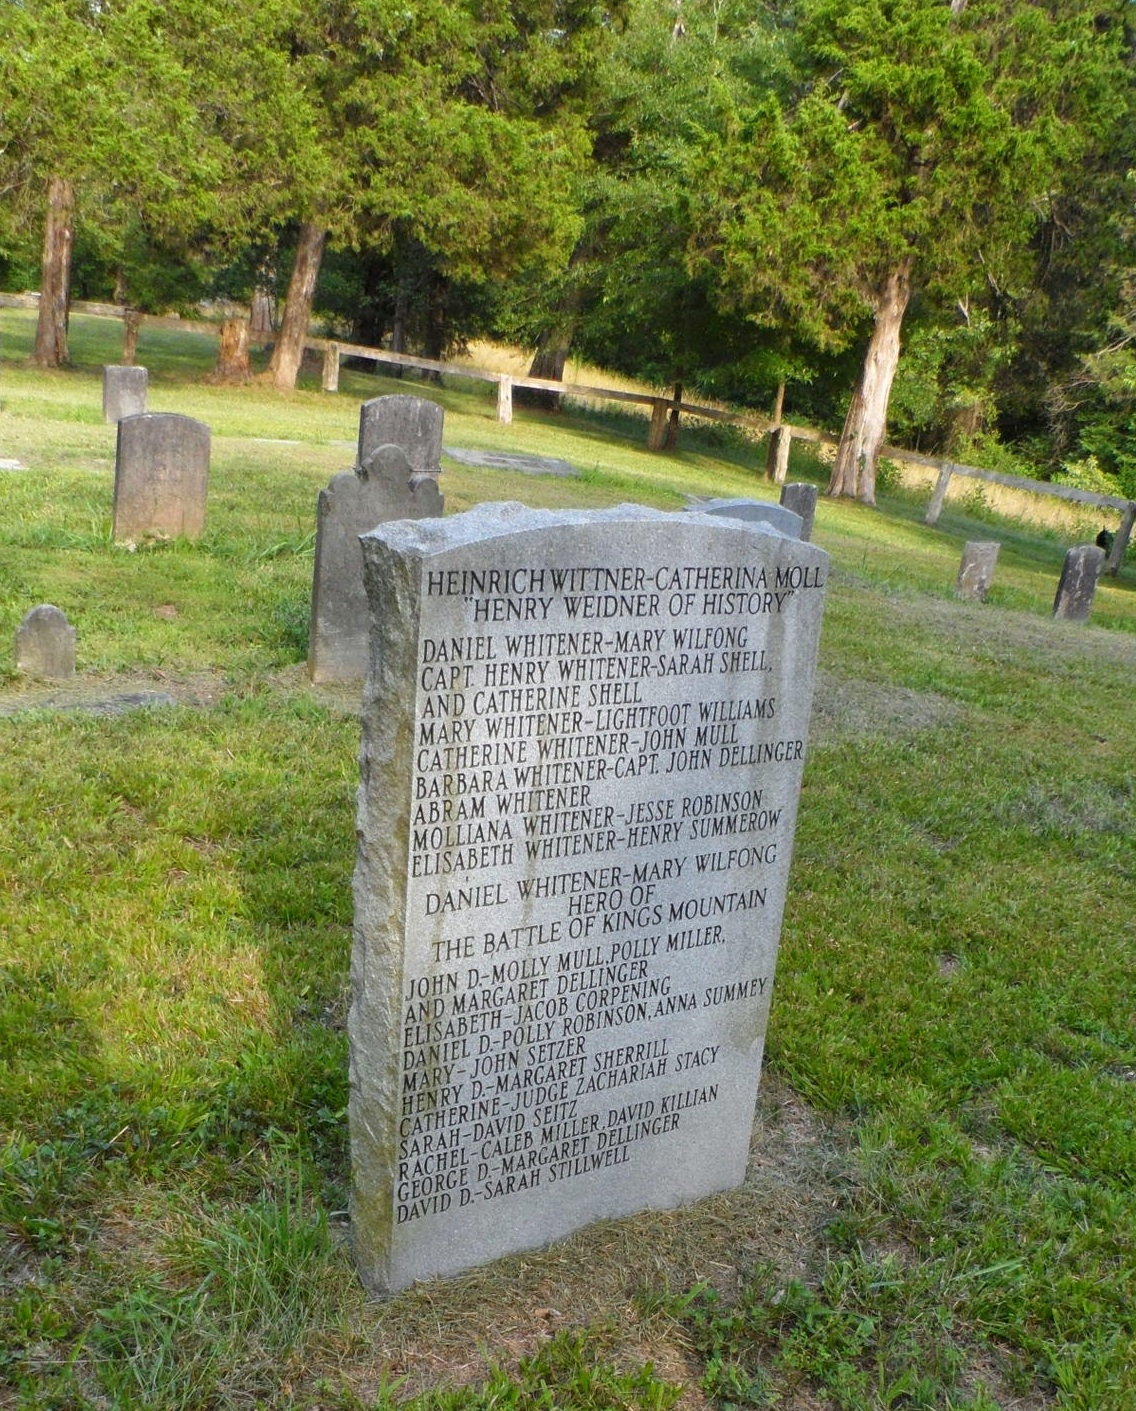 Tombstone Tuesday: Henrich Weidner and Catharina Mull Weidner in